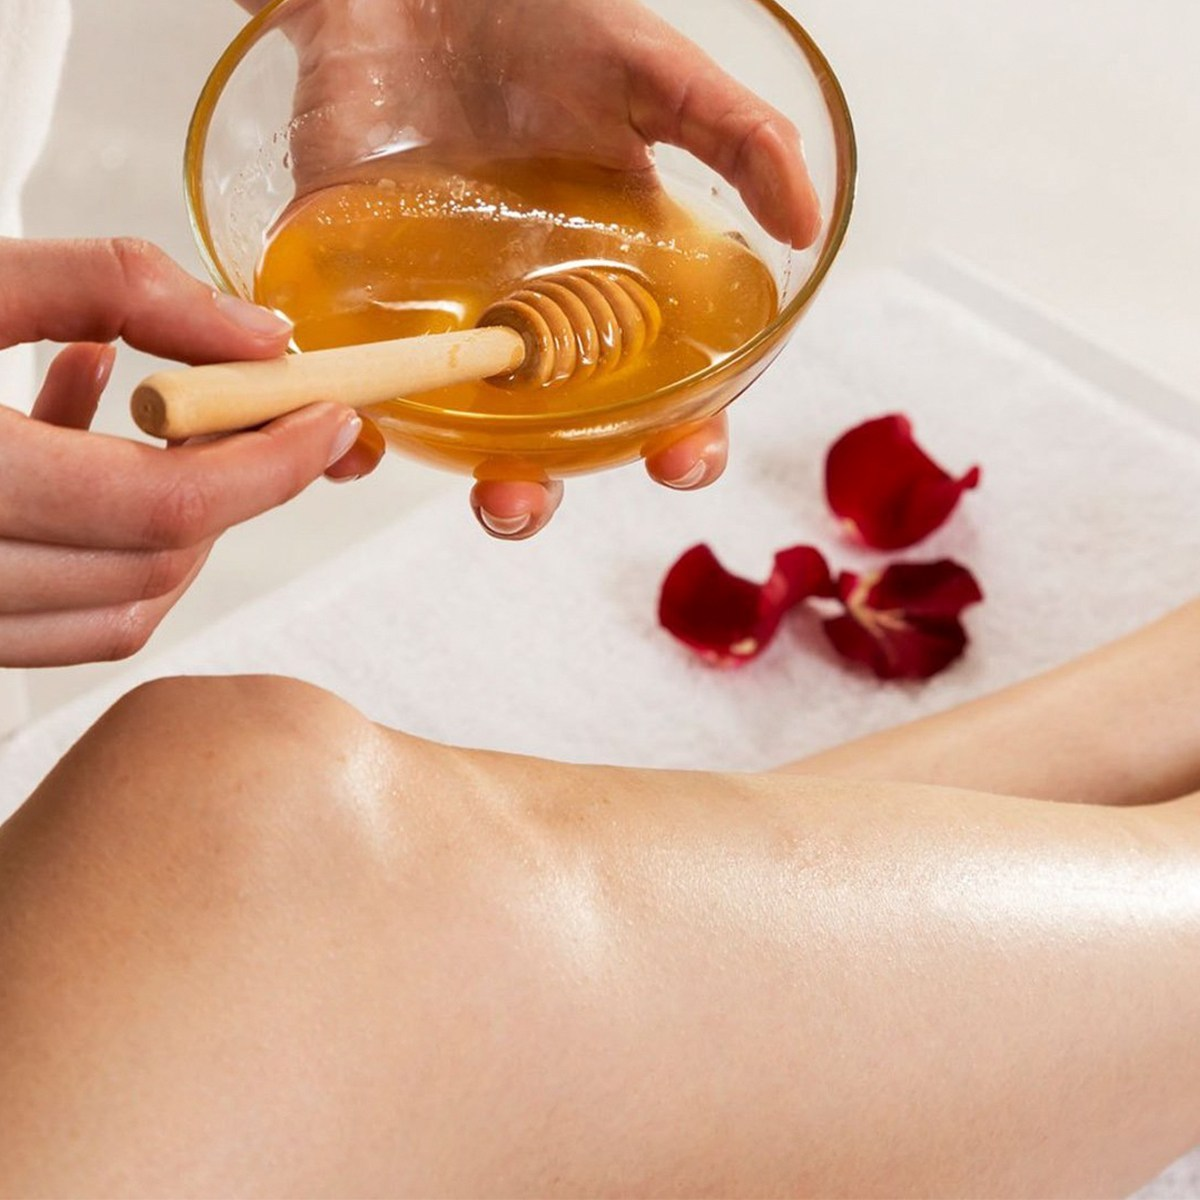 These waxing methods only need 15 minutes to perform at home